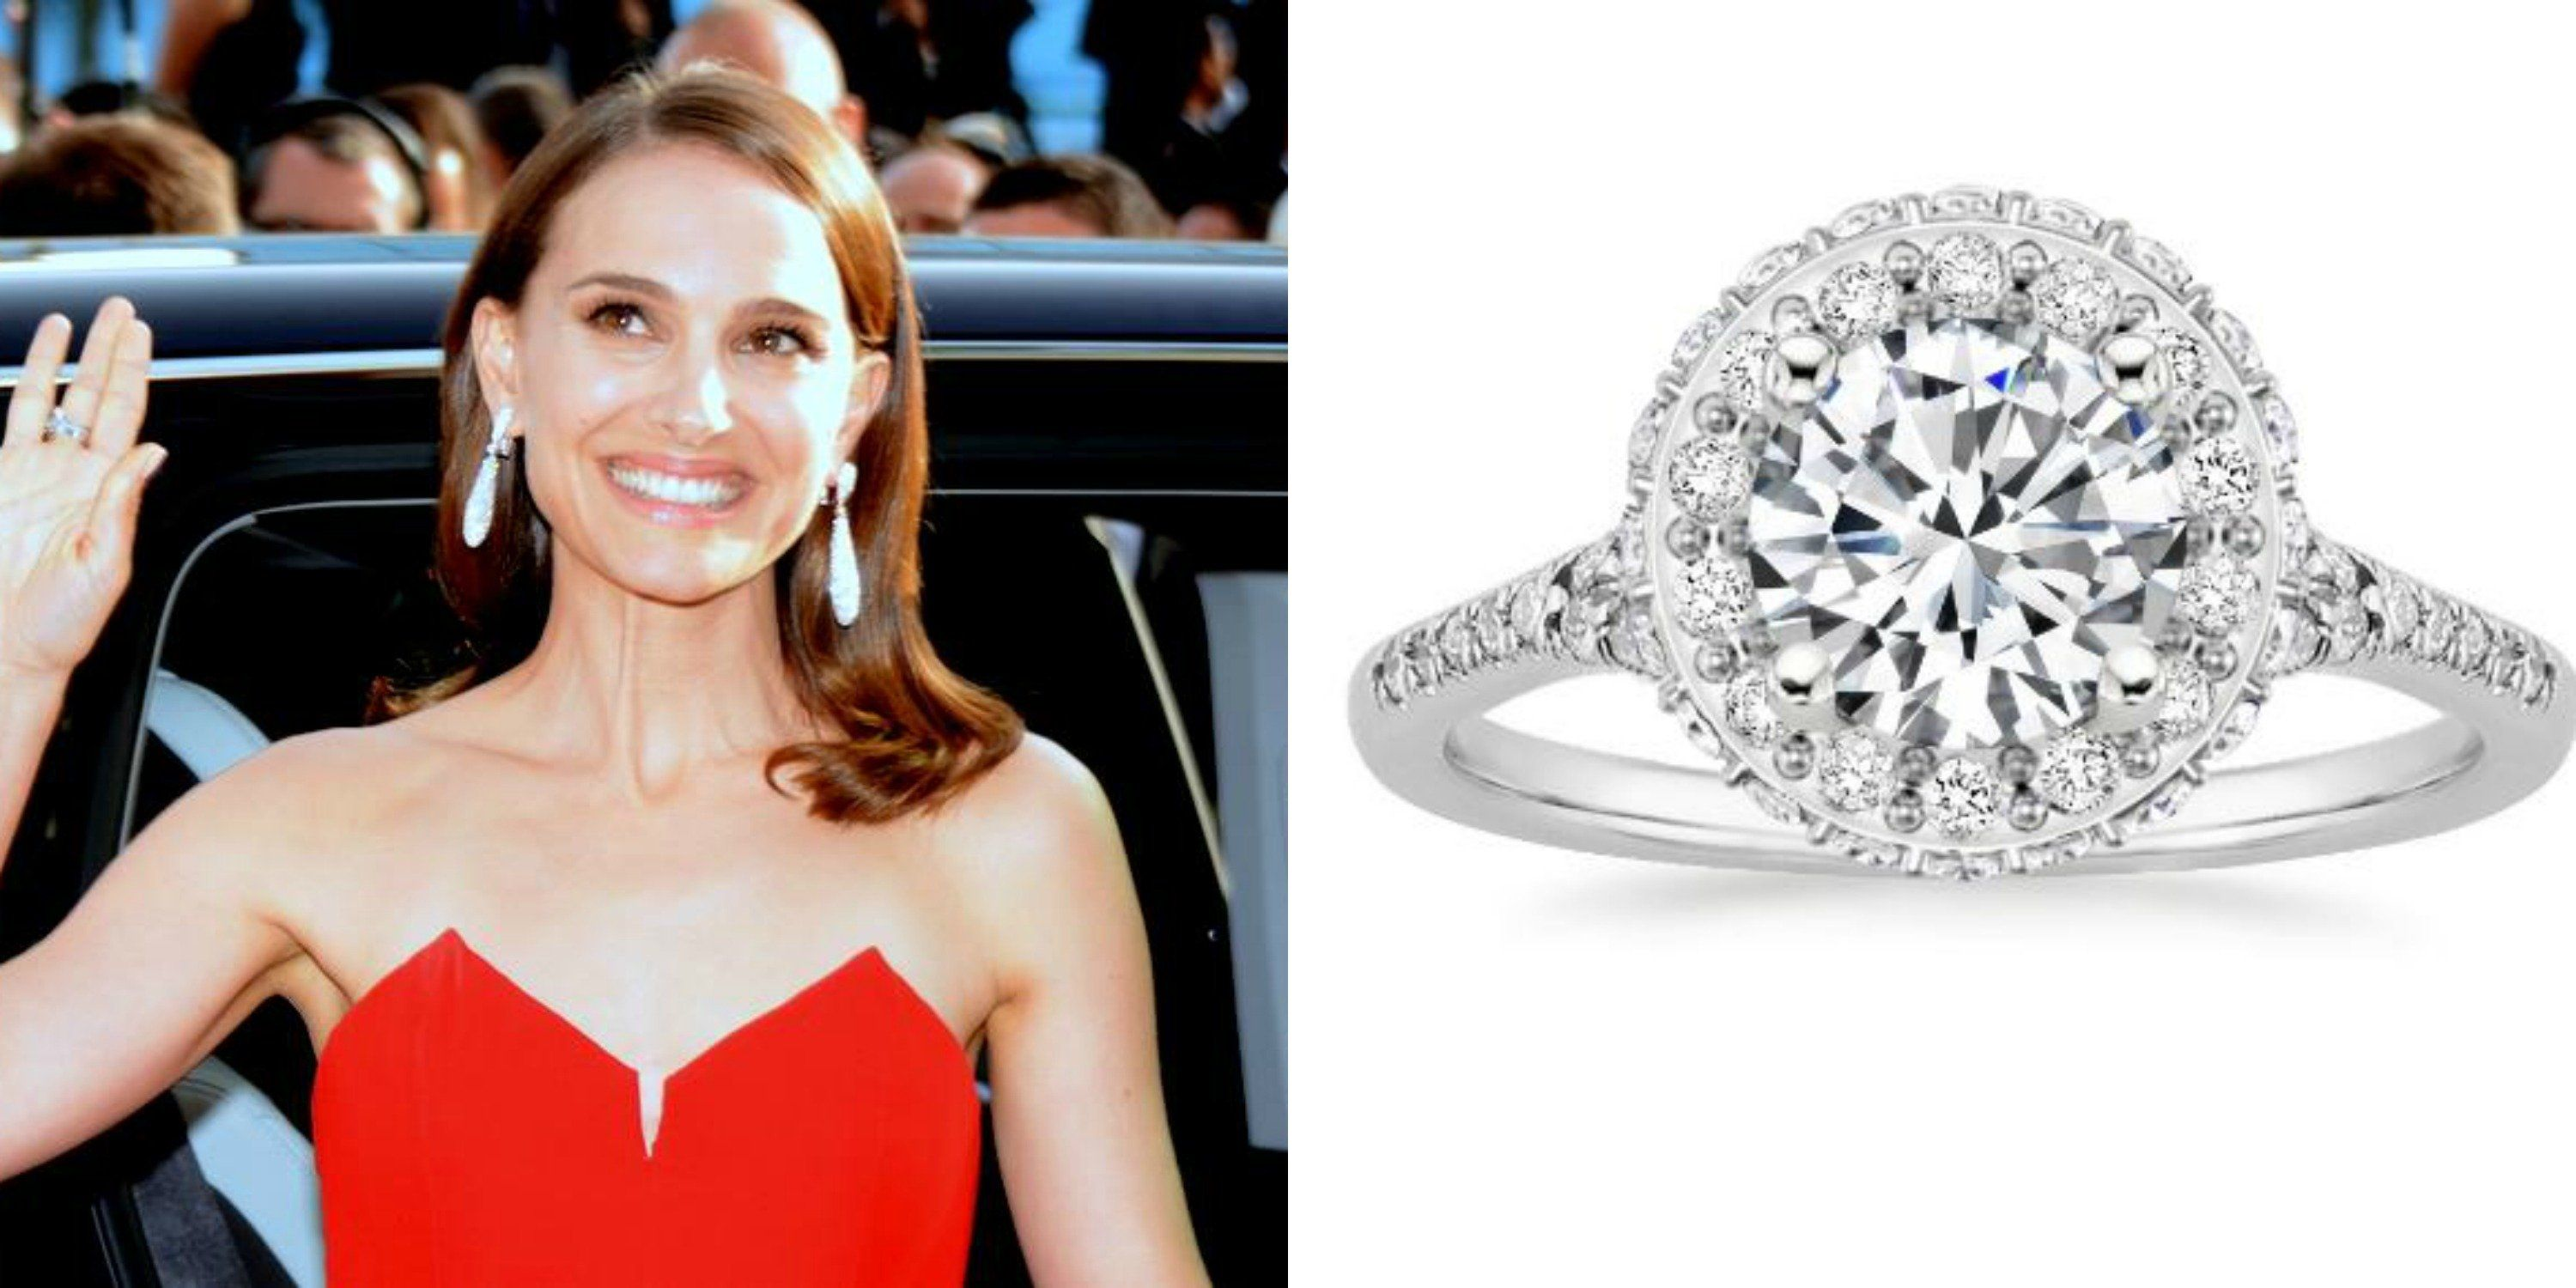 Celebrity Engagement Rings Brilliant Earth Celebrity Wedding Rings Celebrity Engagement Rings Celebrity Weddings